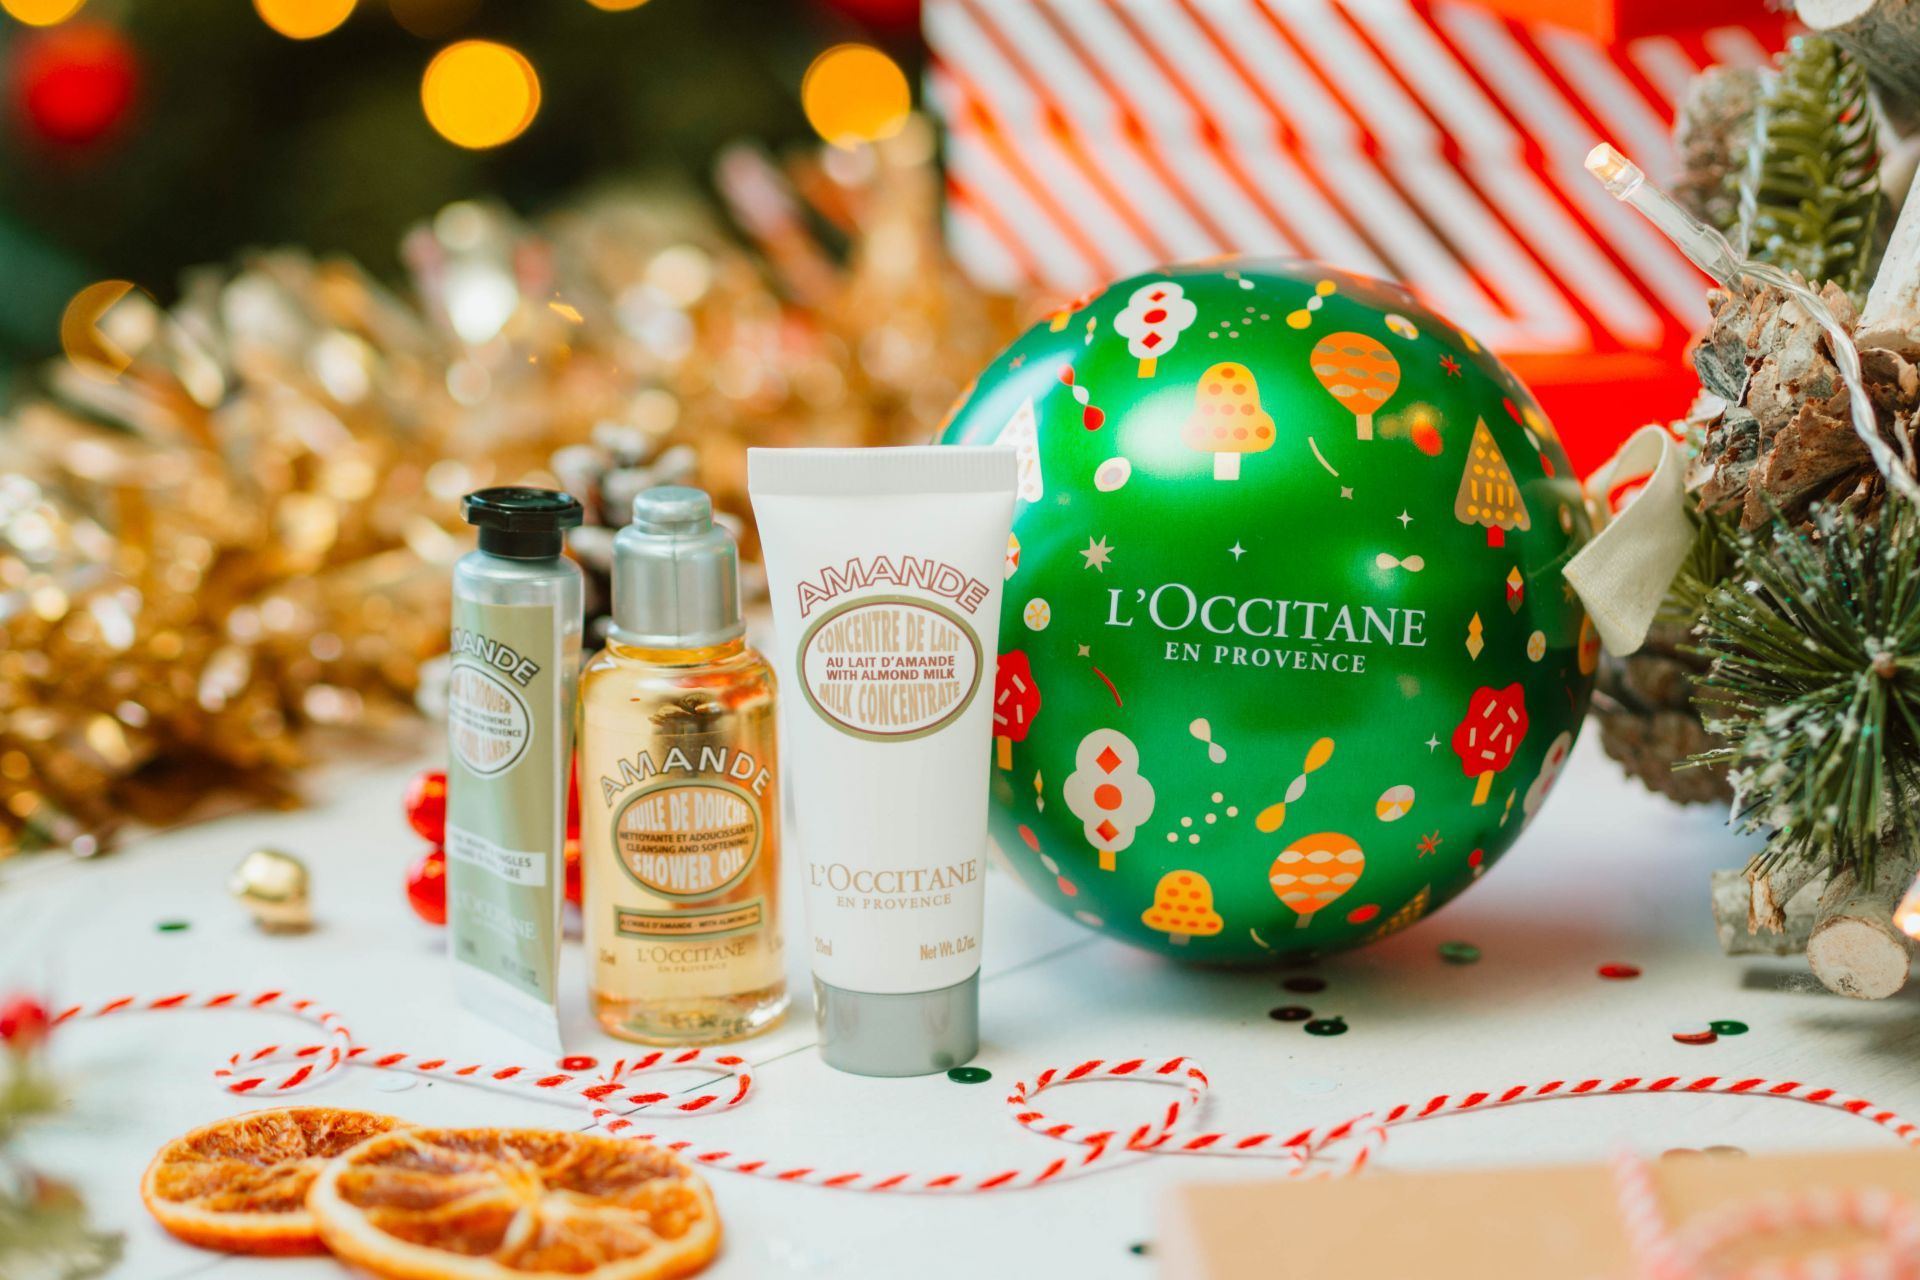 L'Occitane Almond Festive Bauble